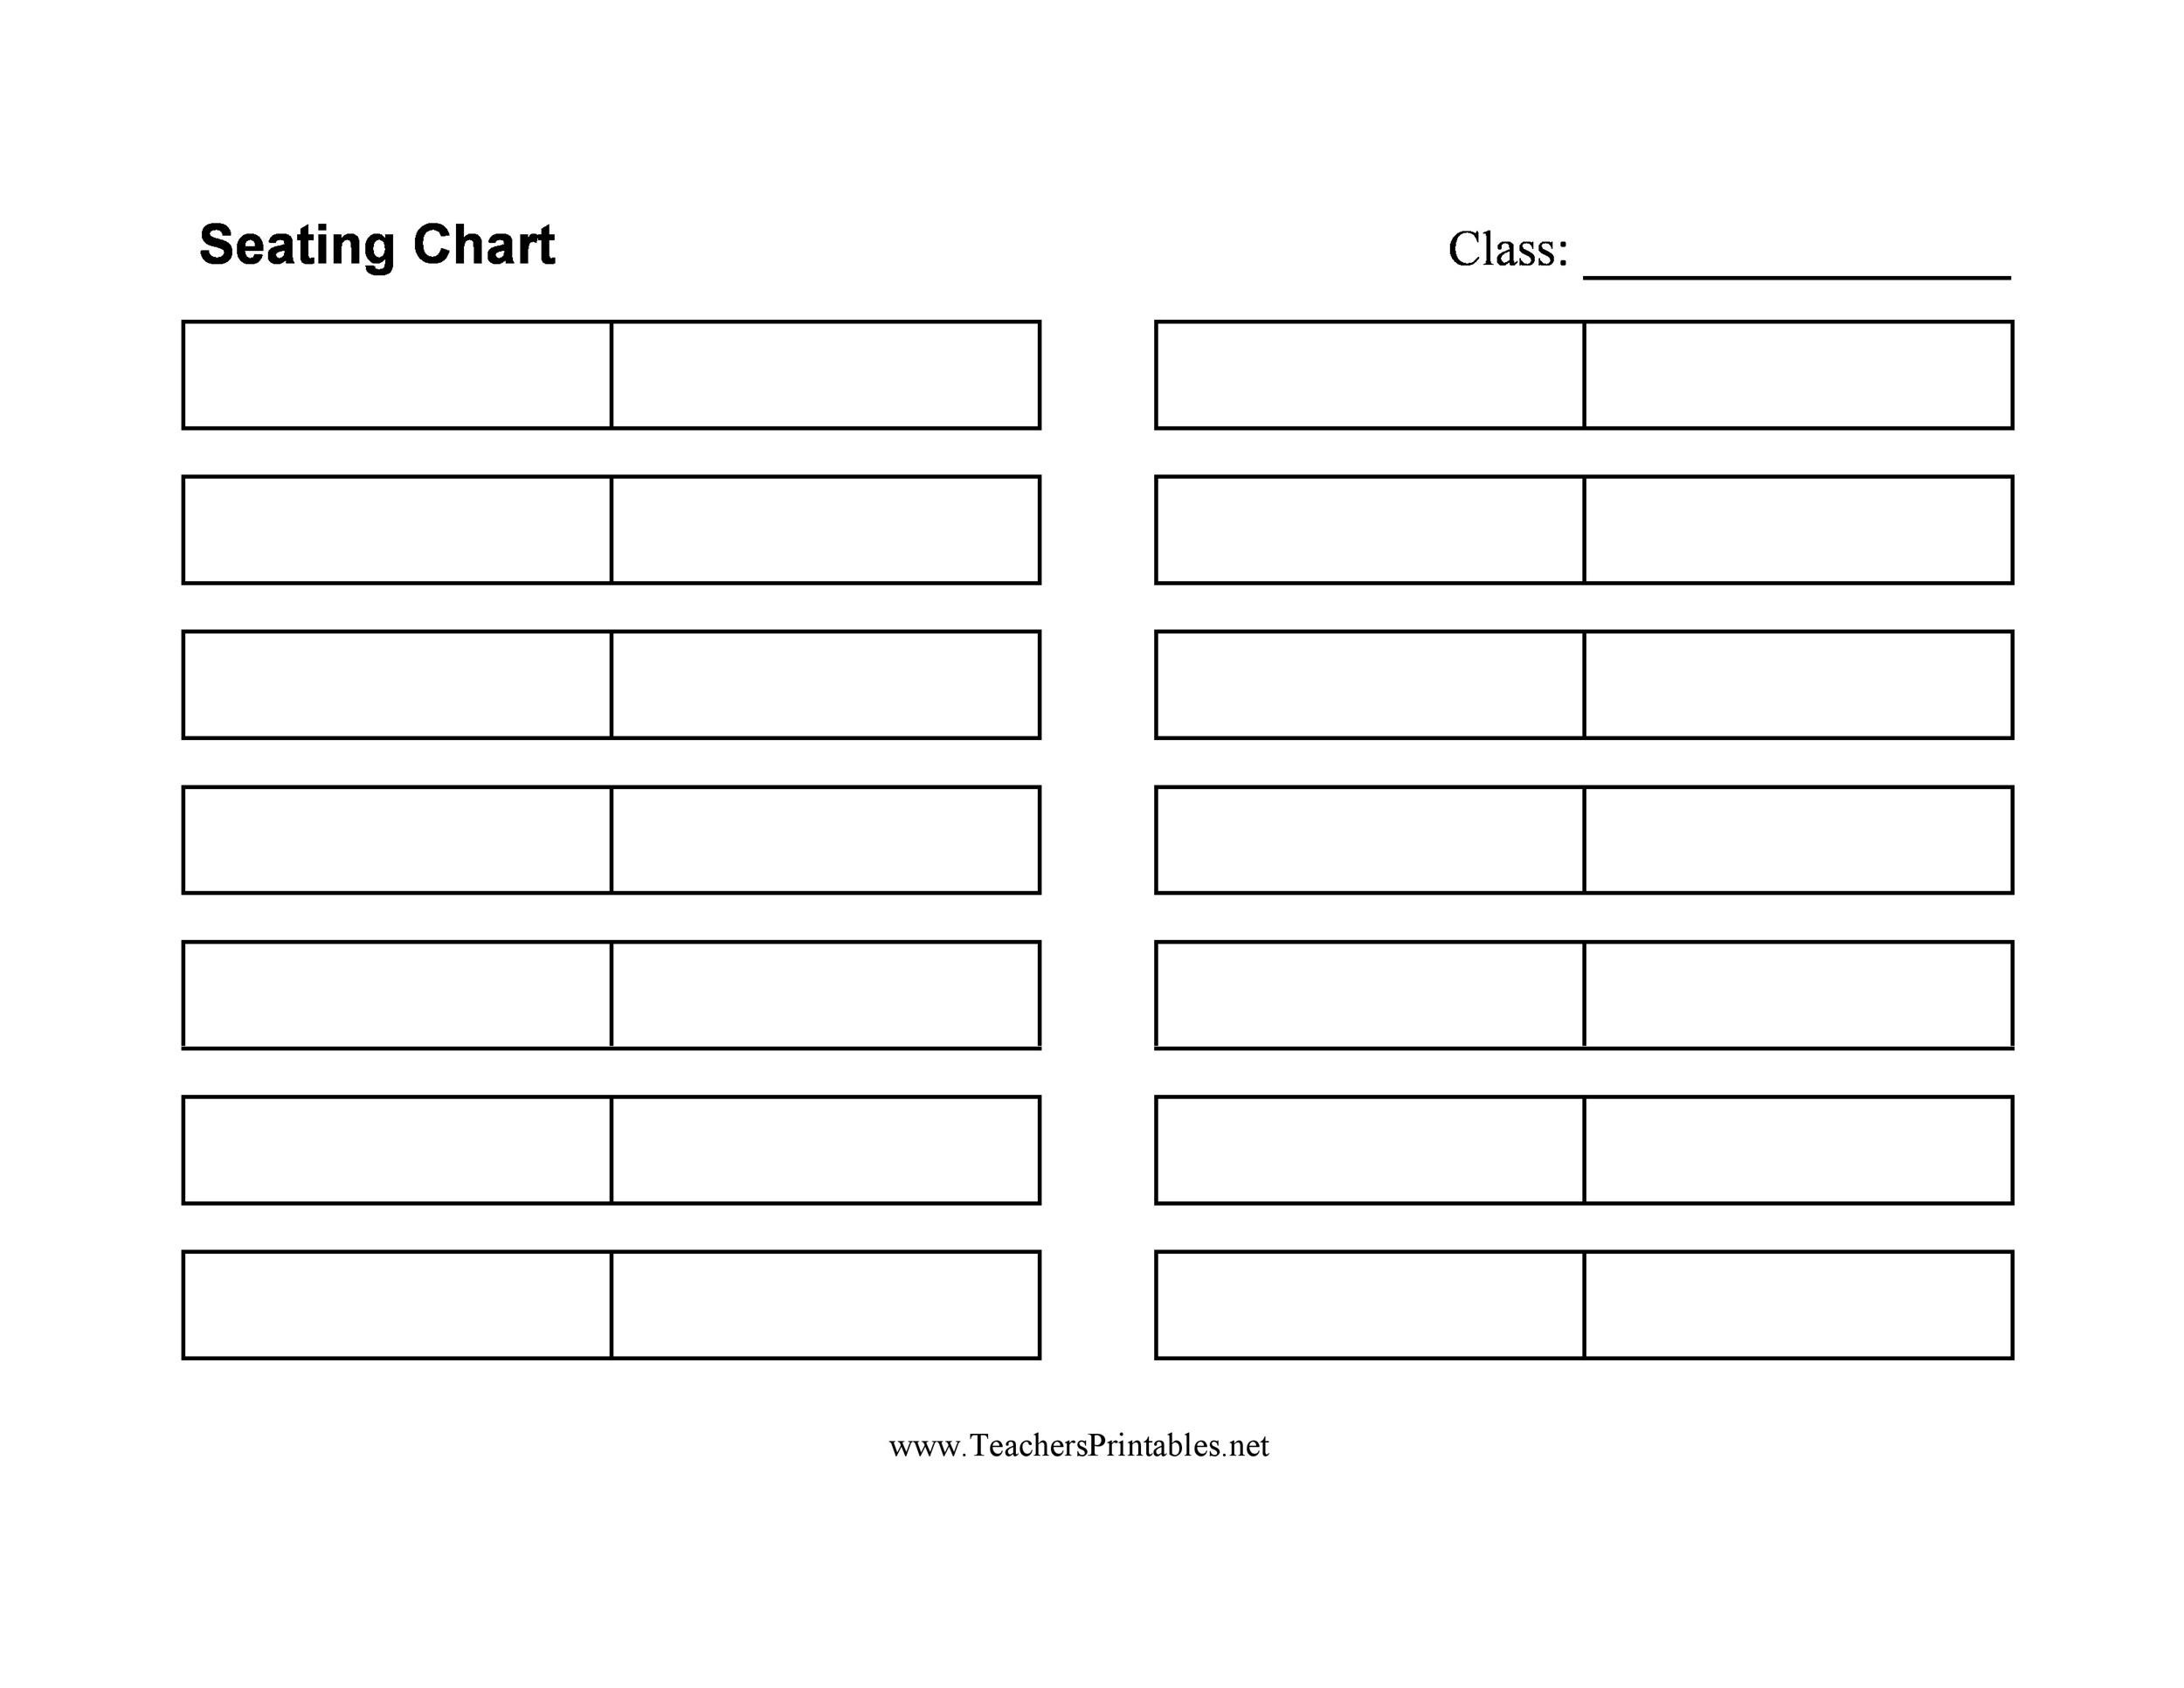 picture regarding Printable Seating Chart Template titled 40+ Exceptional Seating Chart Templates (Marriage, Clroom + further more)